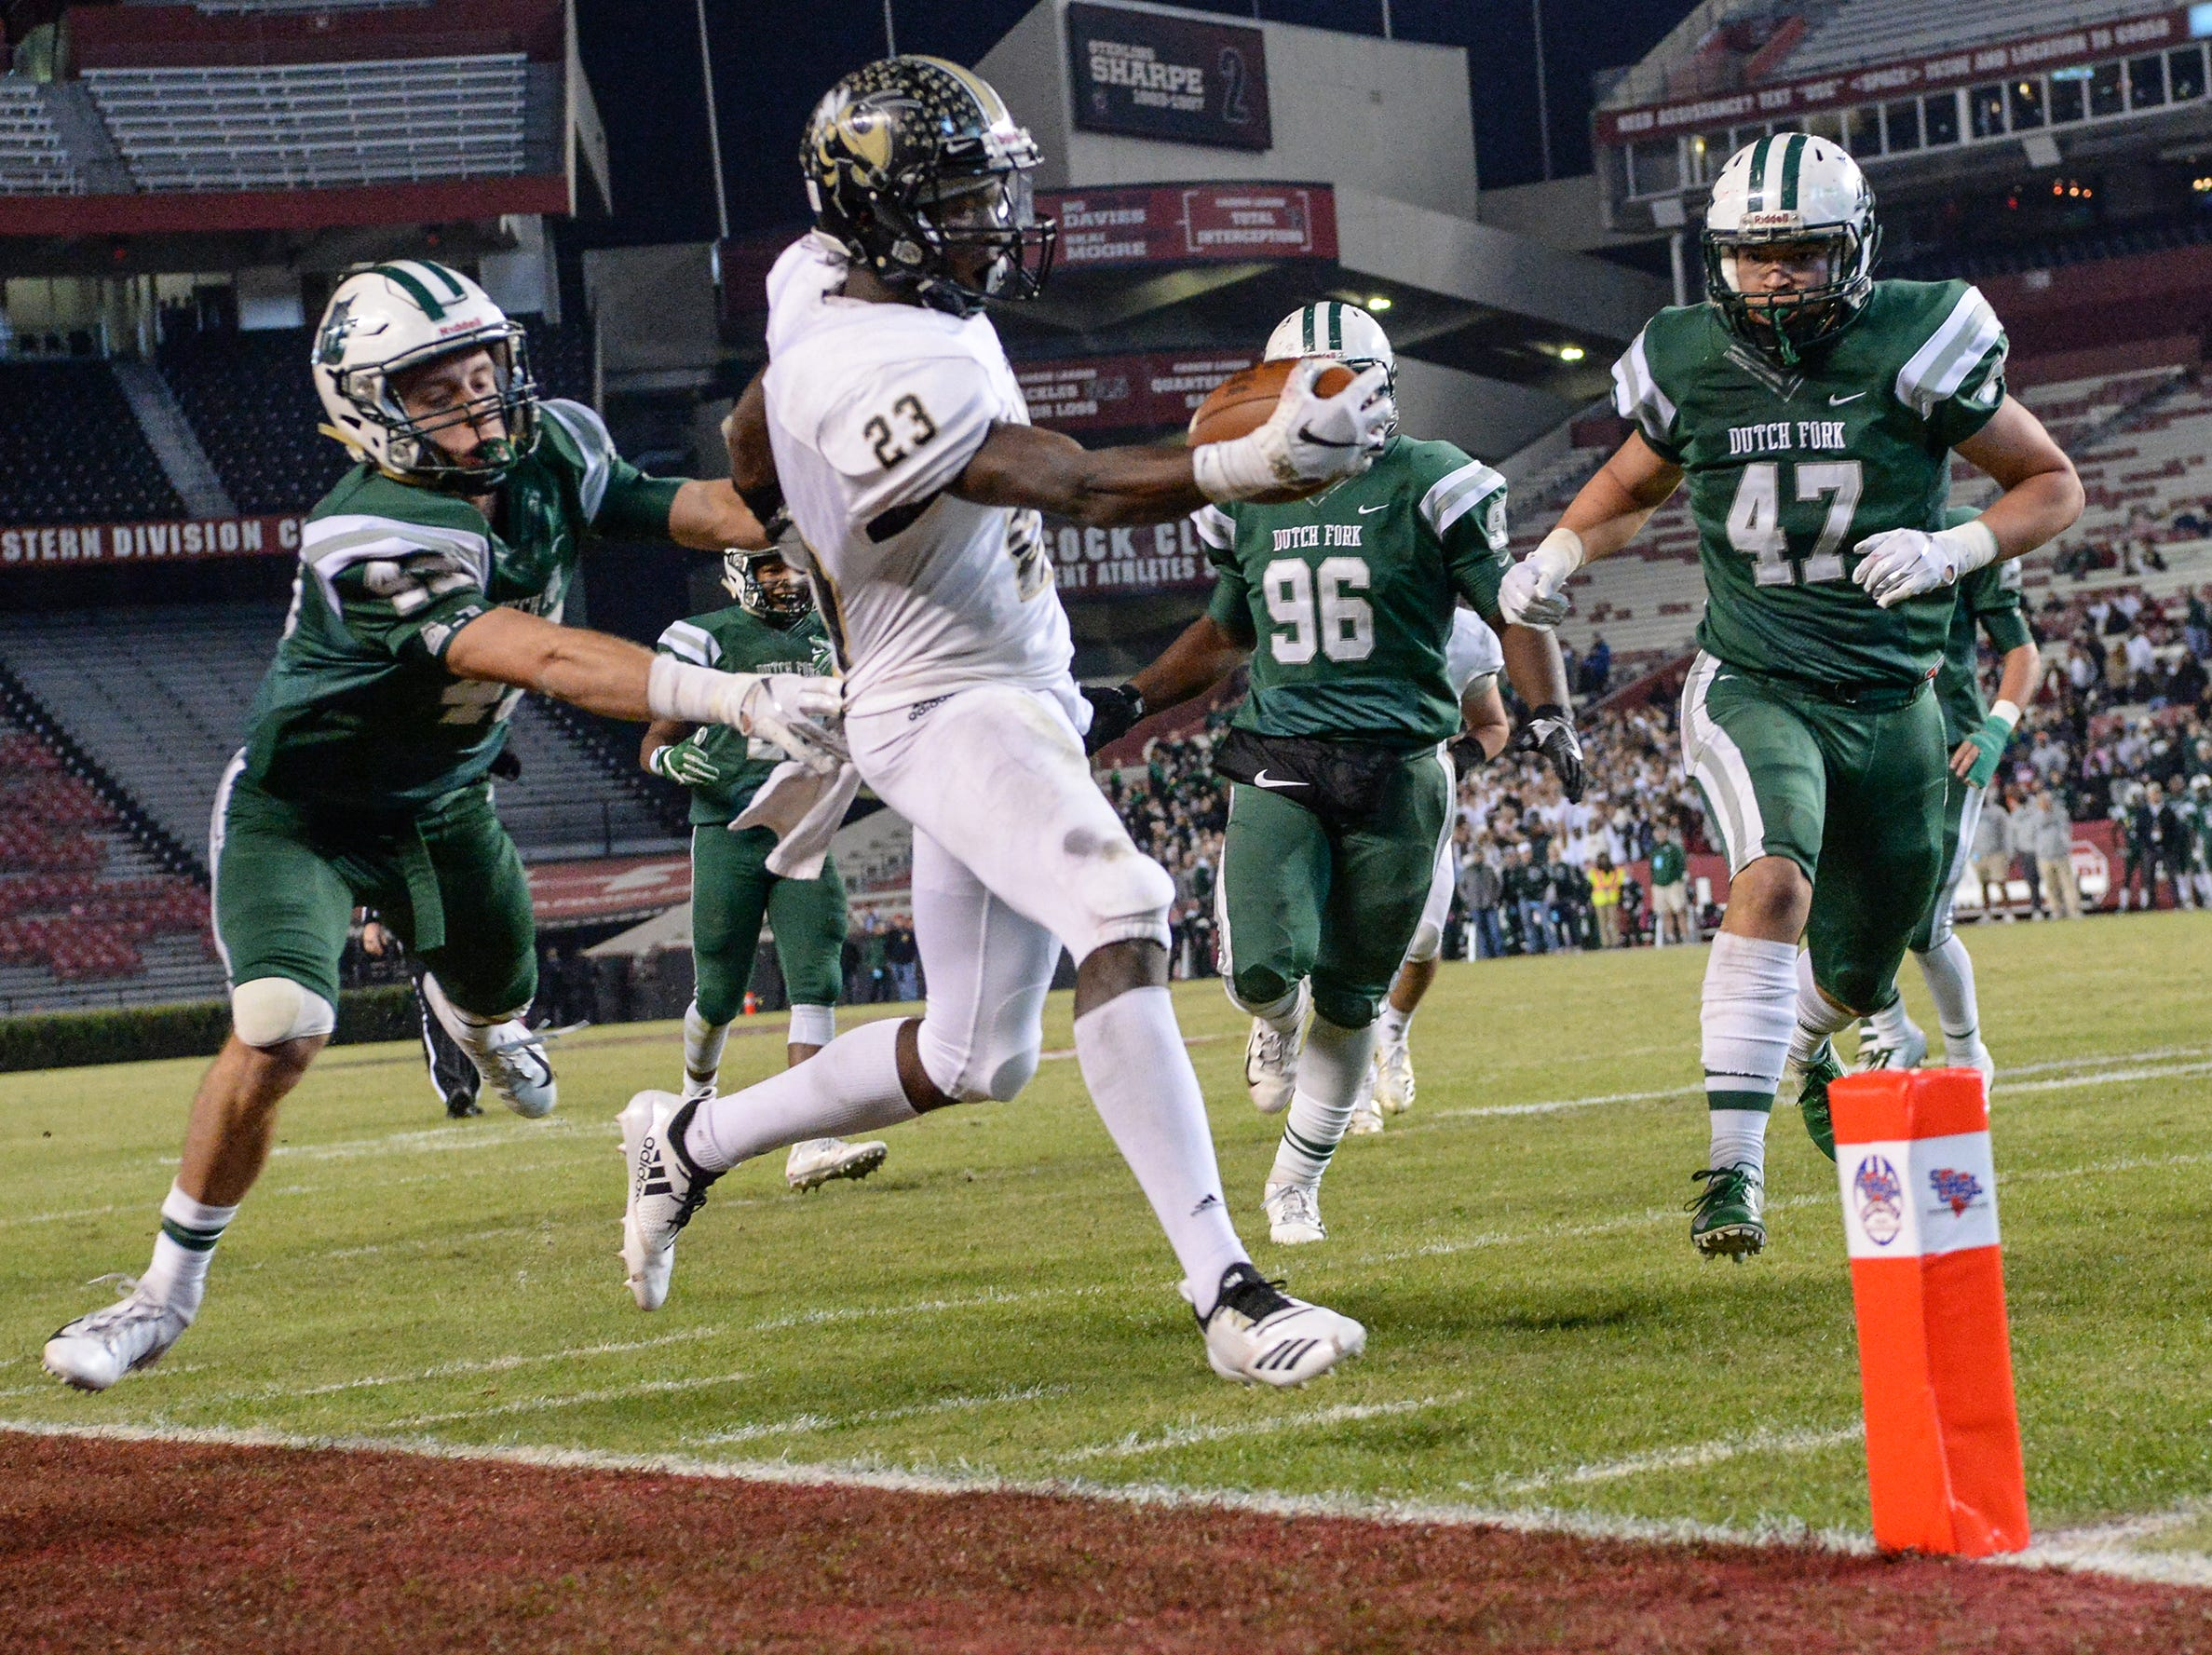 TL Hanna senior Isaiah Norris (23) nearly scores near Dutch Fork senior Lawson Danley(47) during the second quarter of the Class AAAAA state championship game at Williams-Brice Stadium in Columbia Saturday, December 8, 2018.